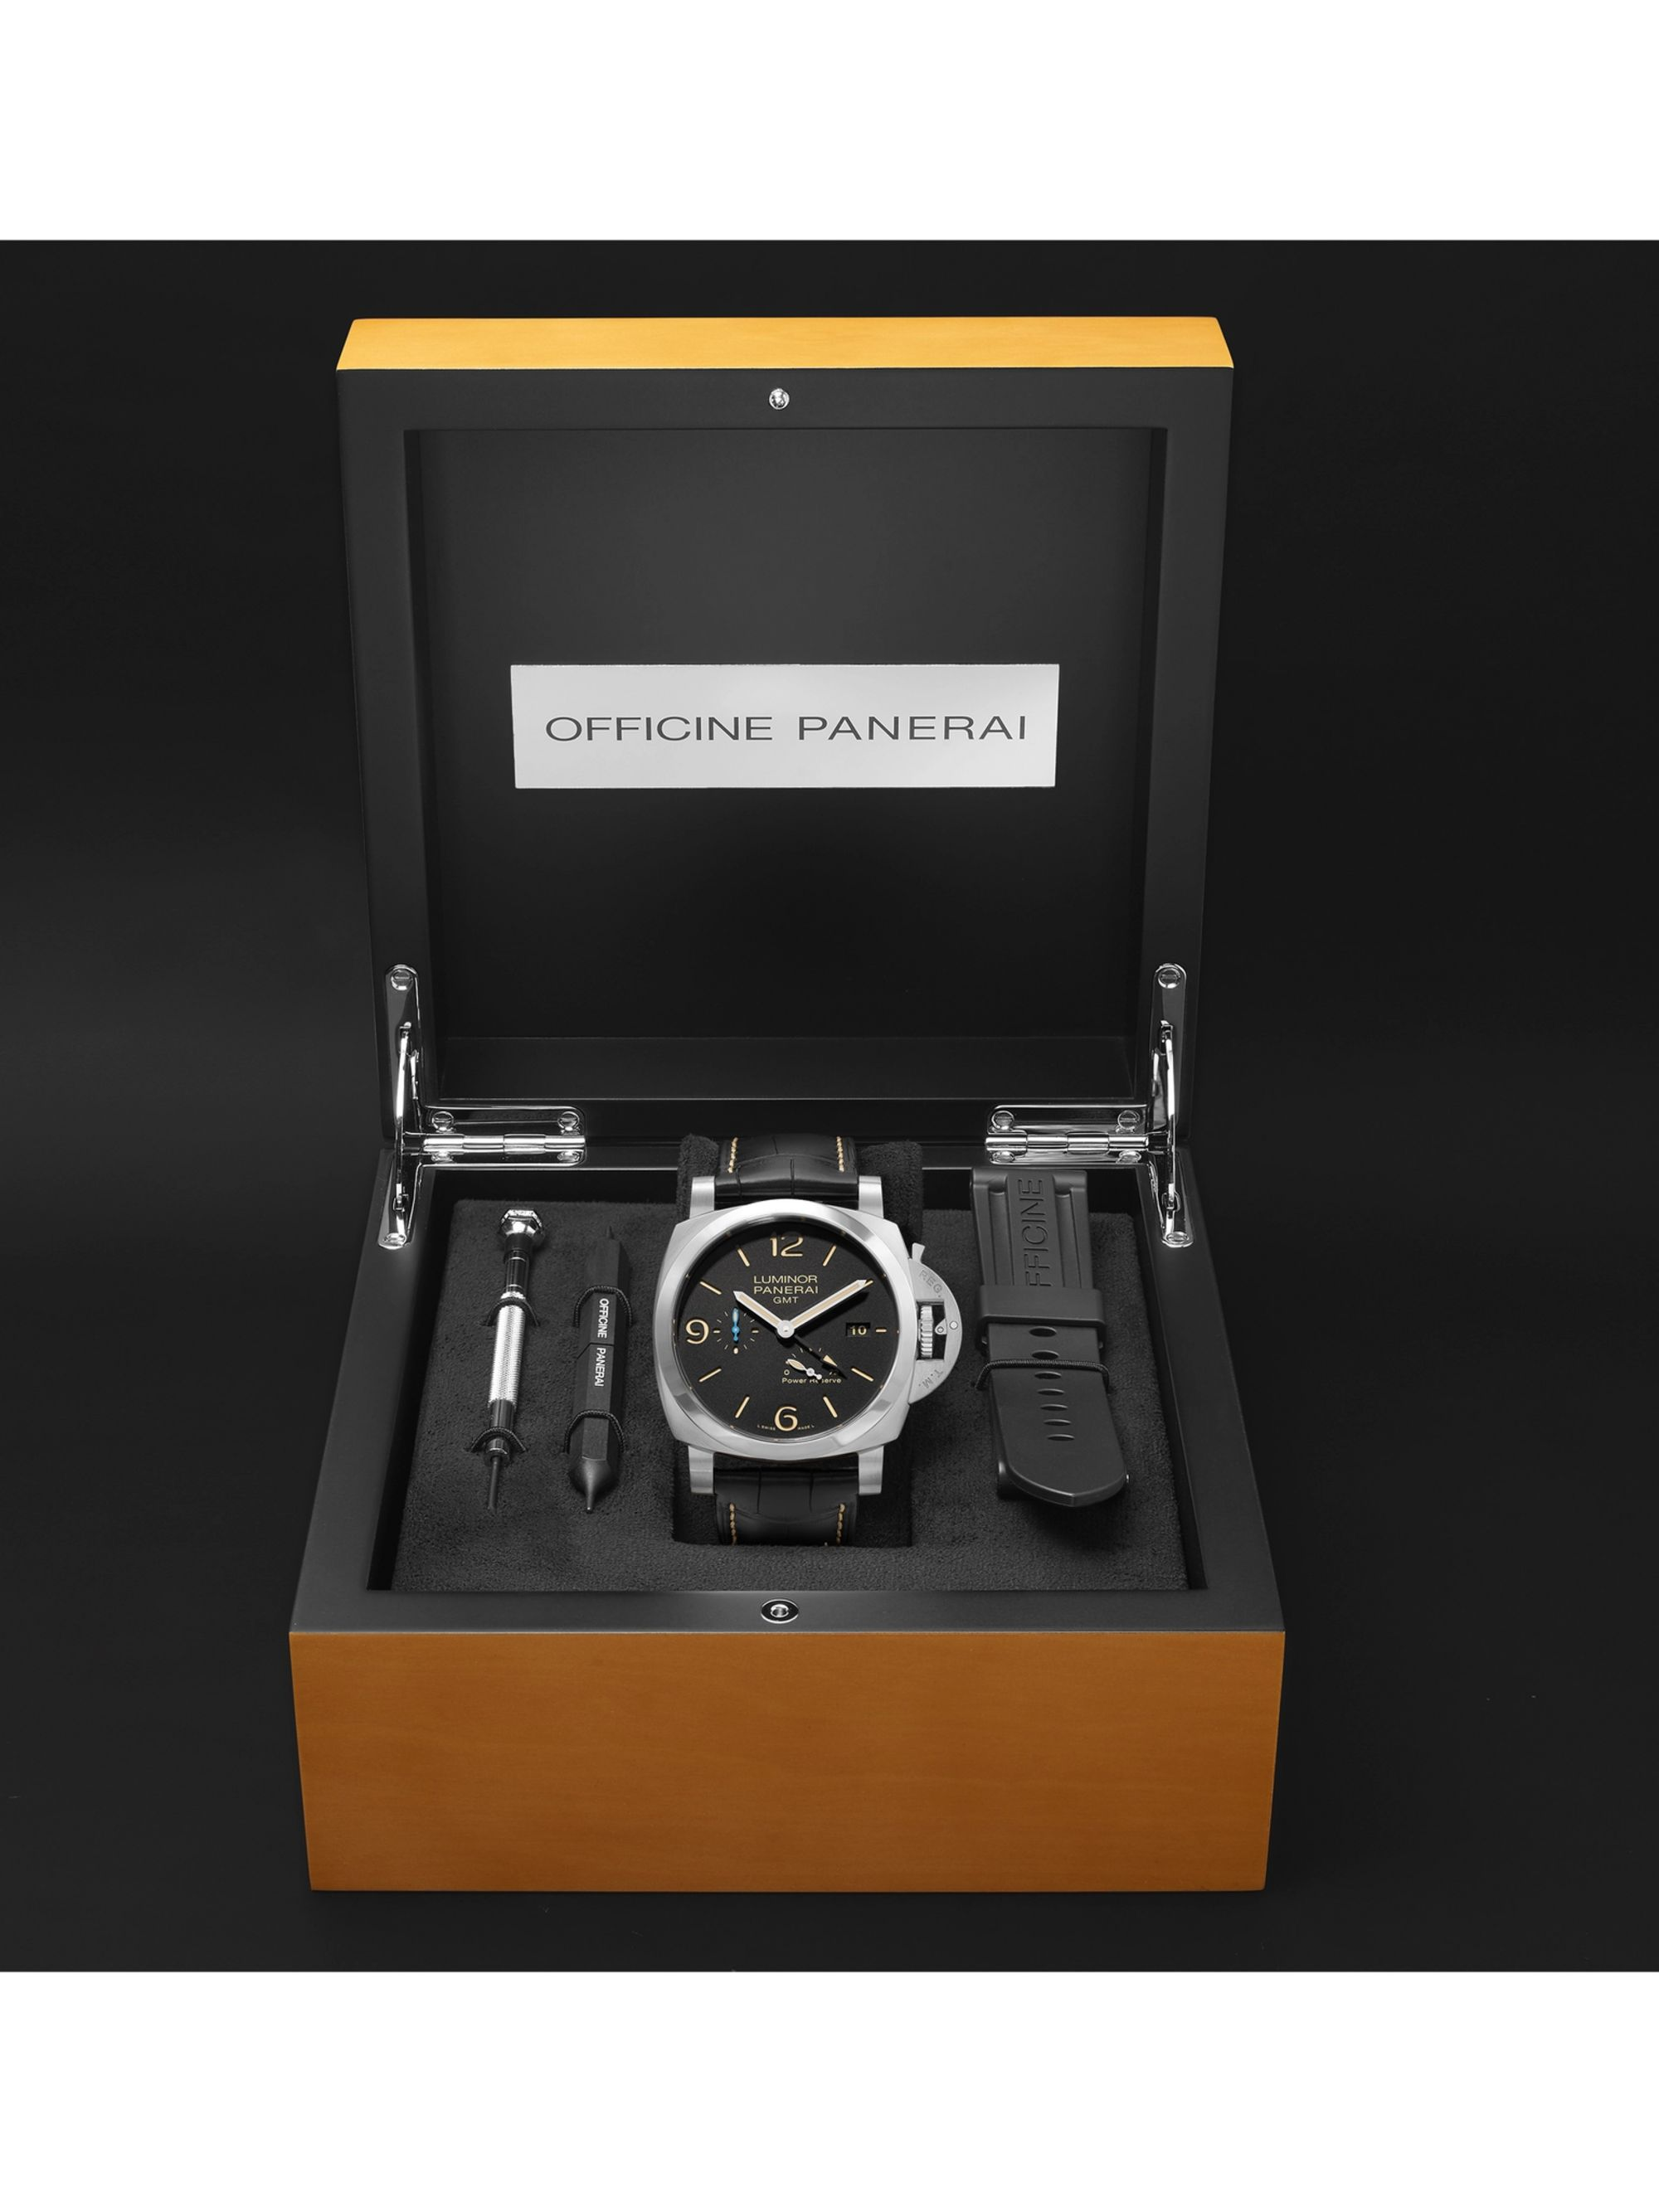 Panerai Luminor 1950 3 Days Acciaio Automatic 44mm Stainless Steel and Alligator Watch, Ref. No. PAM01321